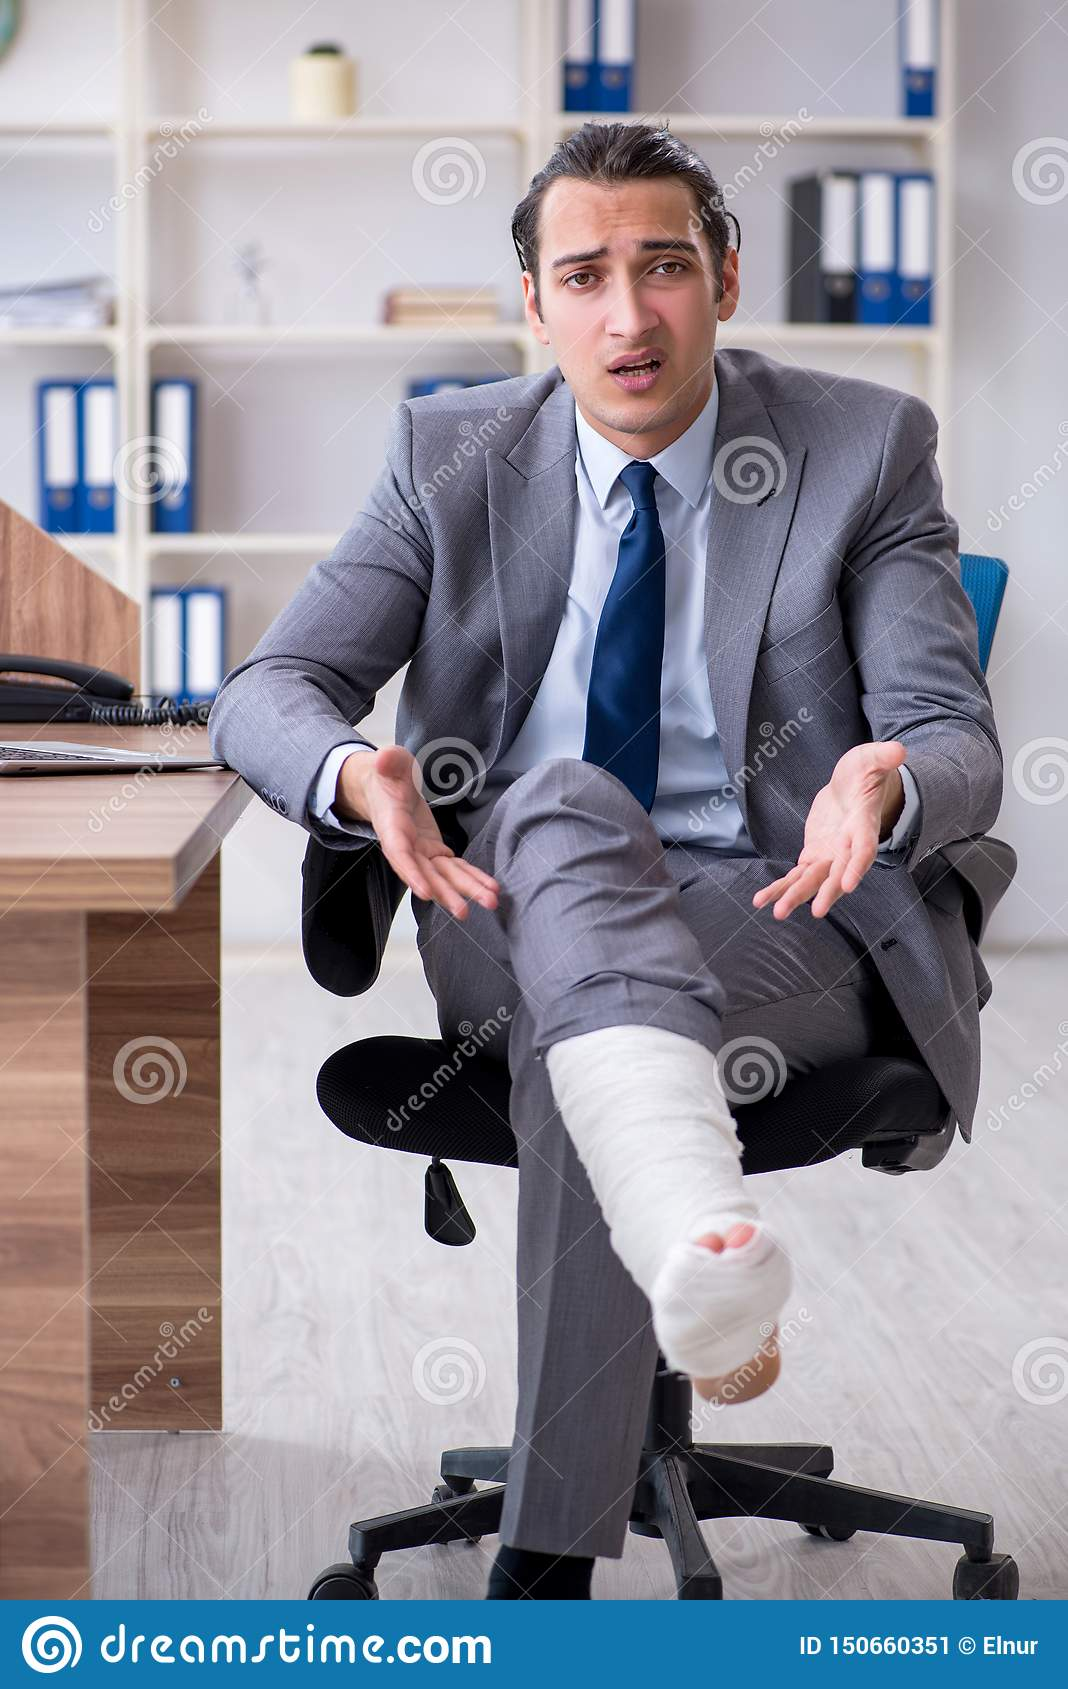 The leg injured male employee in the office